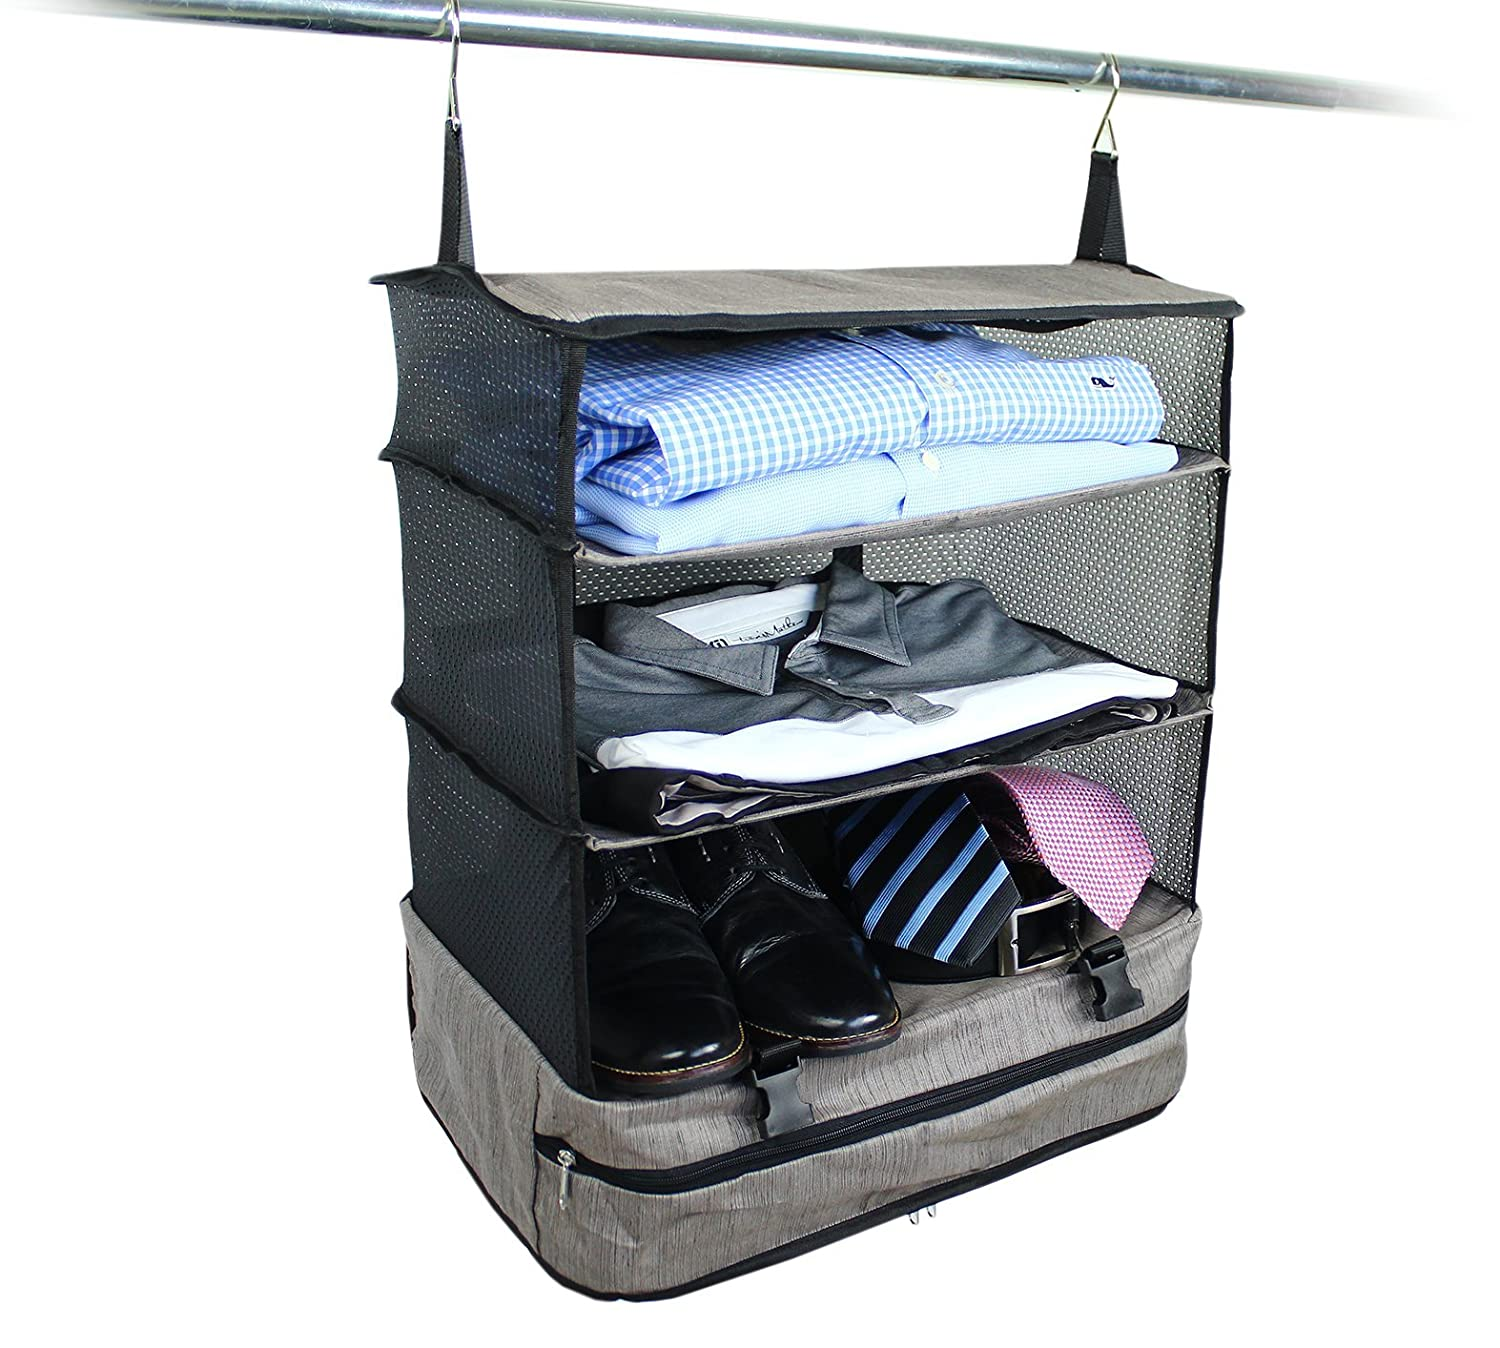 Stow-N-Go Portable Luggage System - Large - Pink, Packable Hanging Travel Shelves and Packing Cube Organizer 647166278241